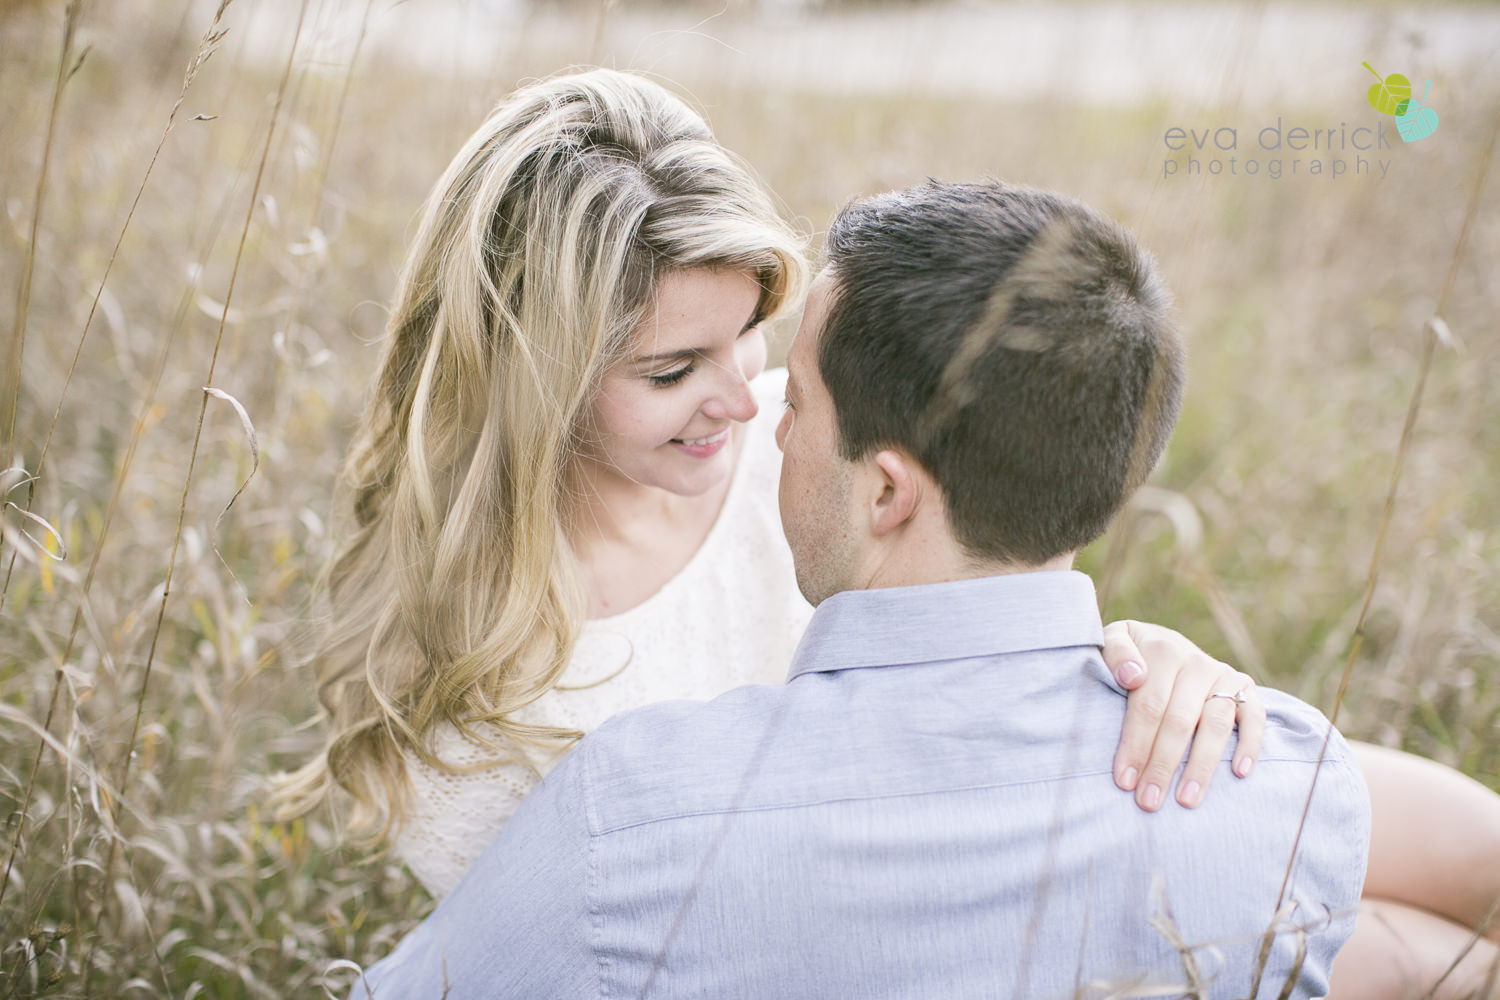 Albion-Hills-Photographer-Engagement-Session-Alanna-Matt-photography-by-Eva-Derrick-Photography-018.JPG